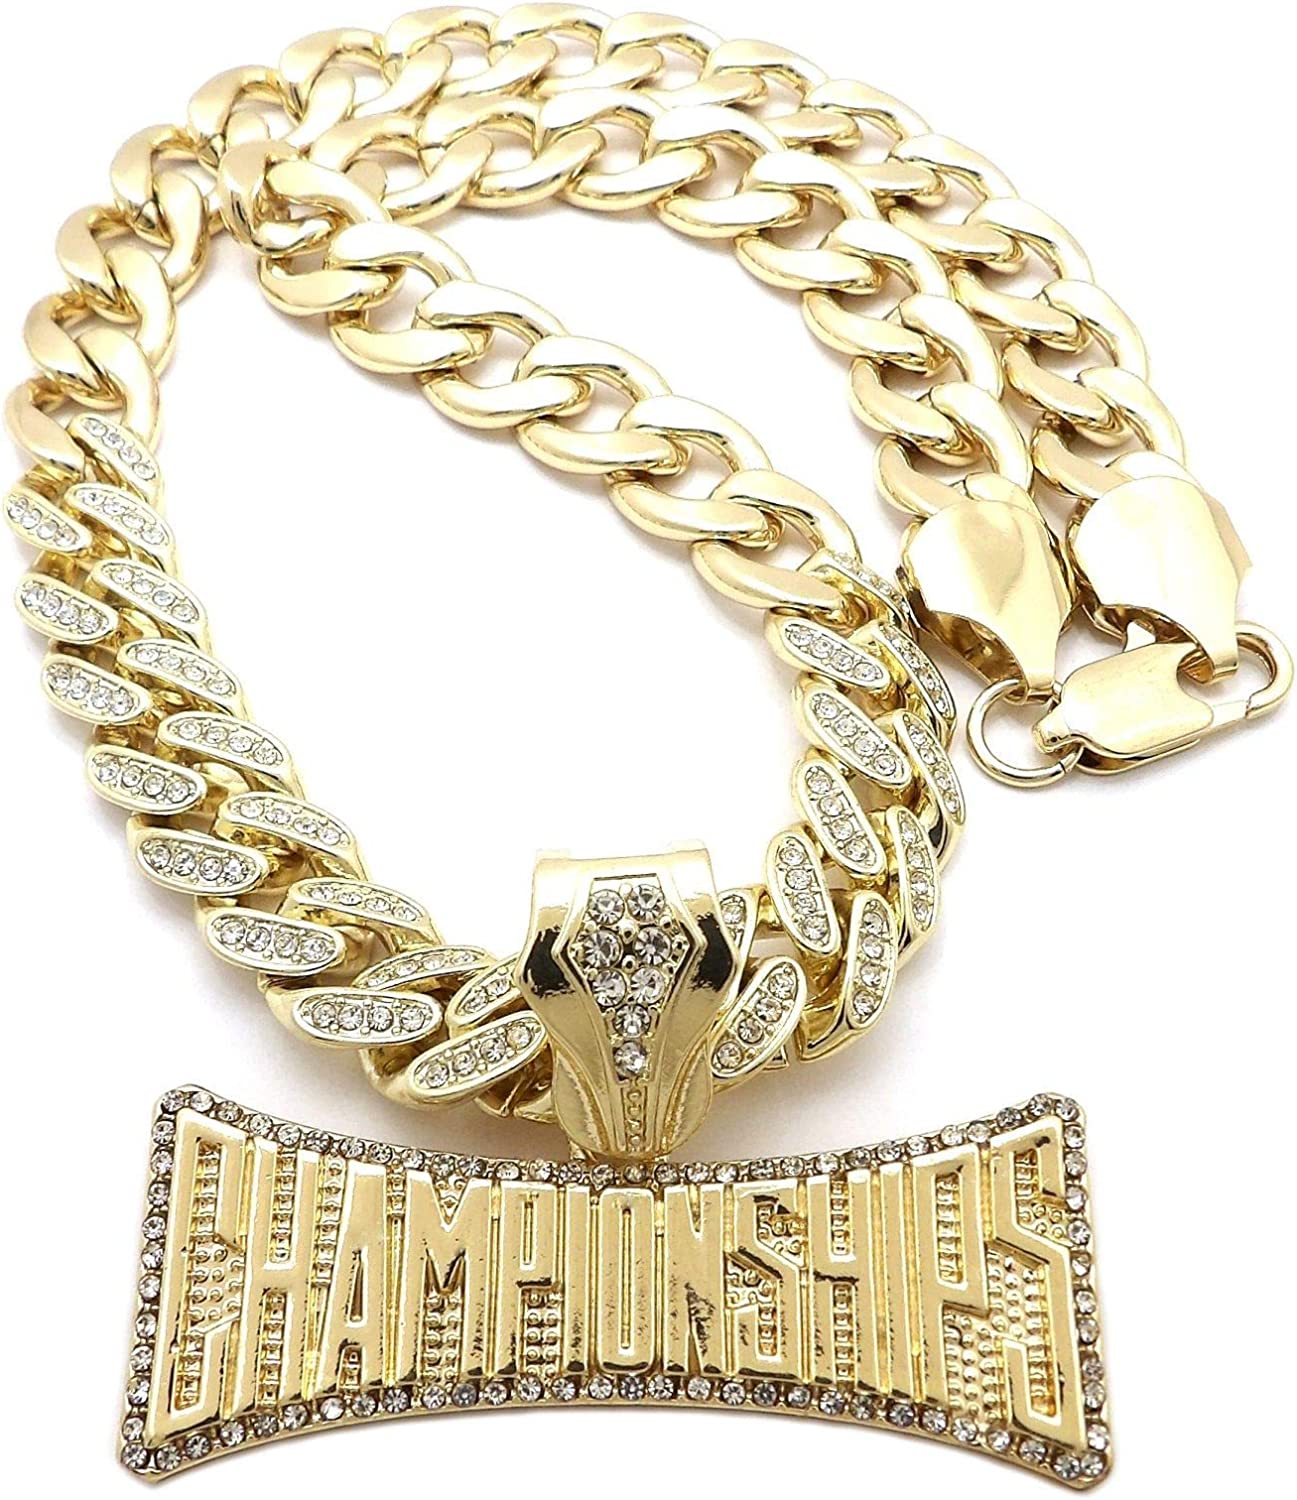 NYFASHION101 Stone Stud Edge Championships Pendant Partial Studded 11mm Cuban Chain Necklace